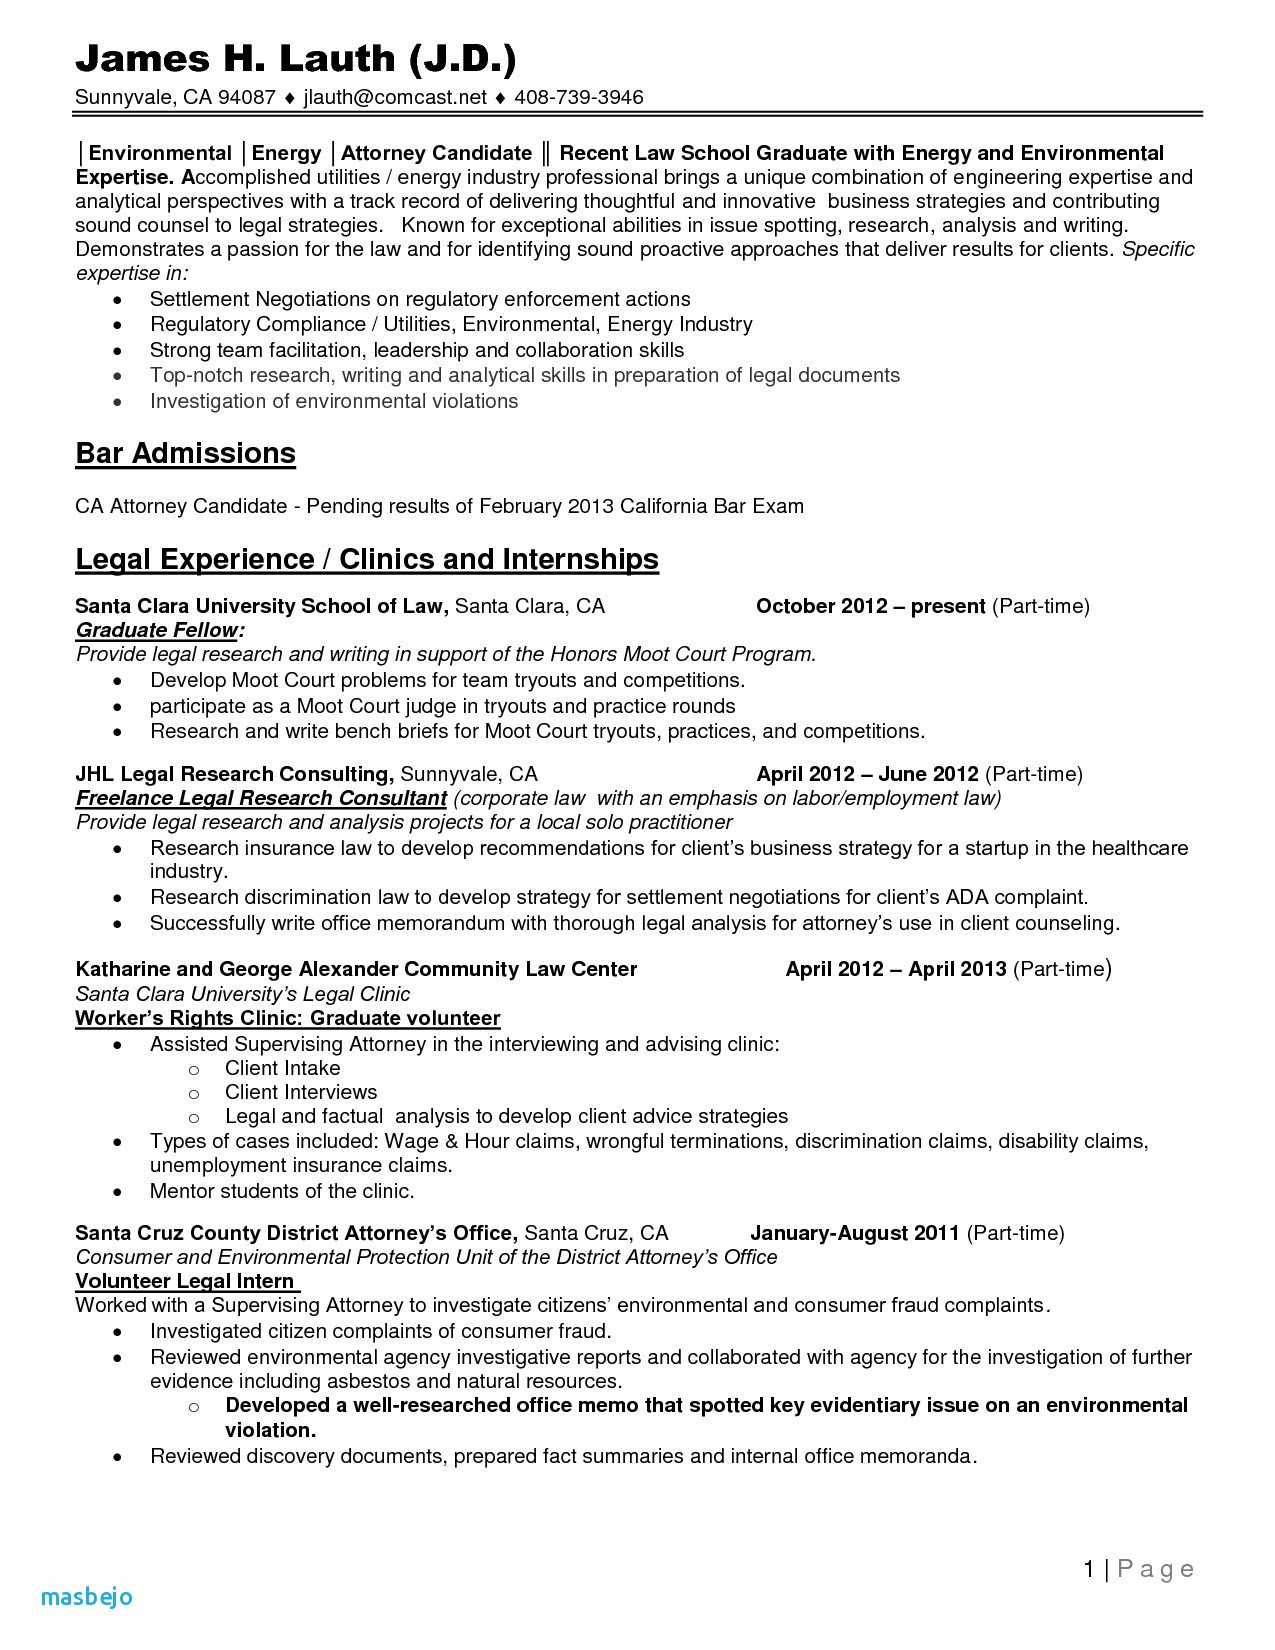 Law School Resume Template - Law Resume Best Legal Resume Examples Law Student Resume Template